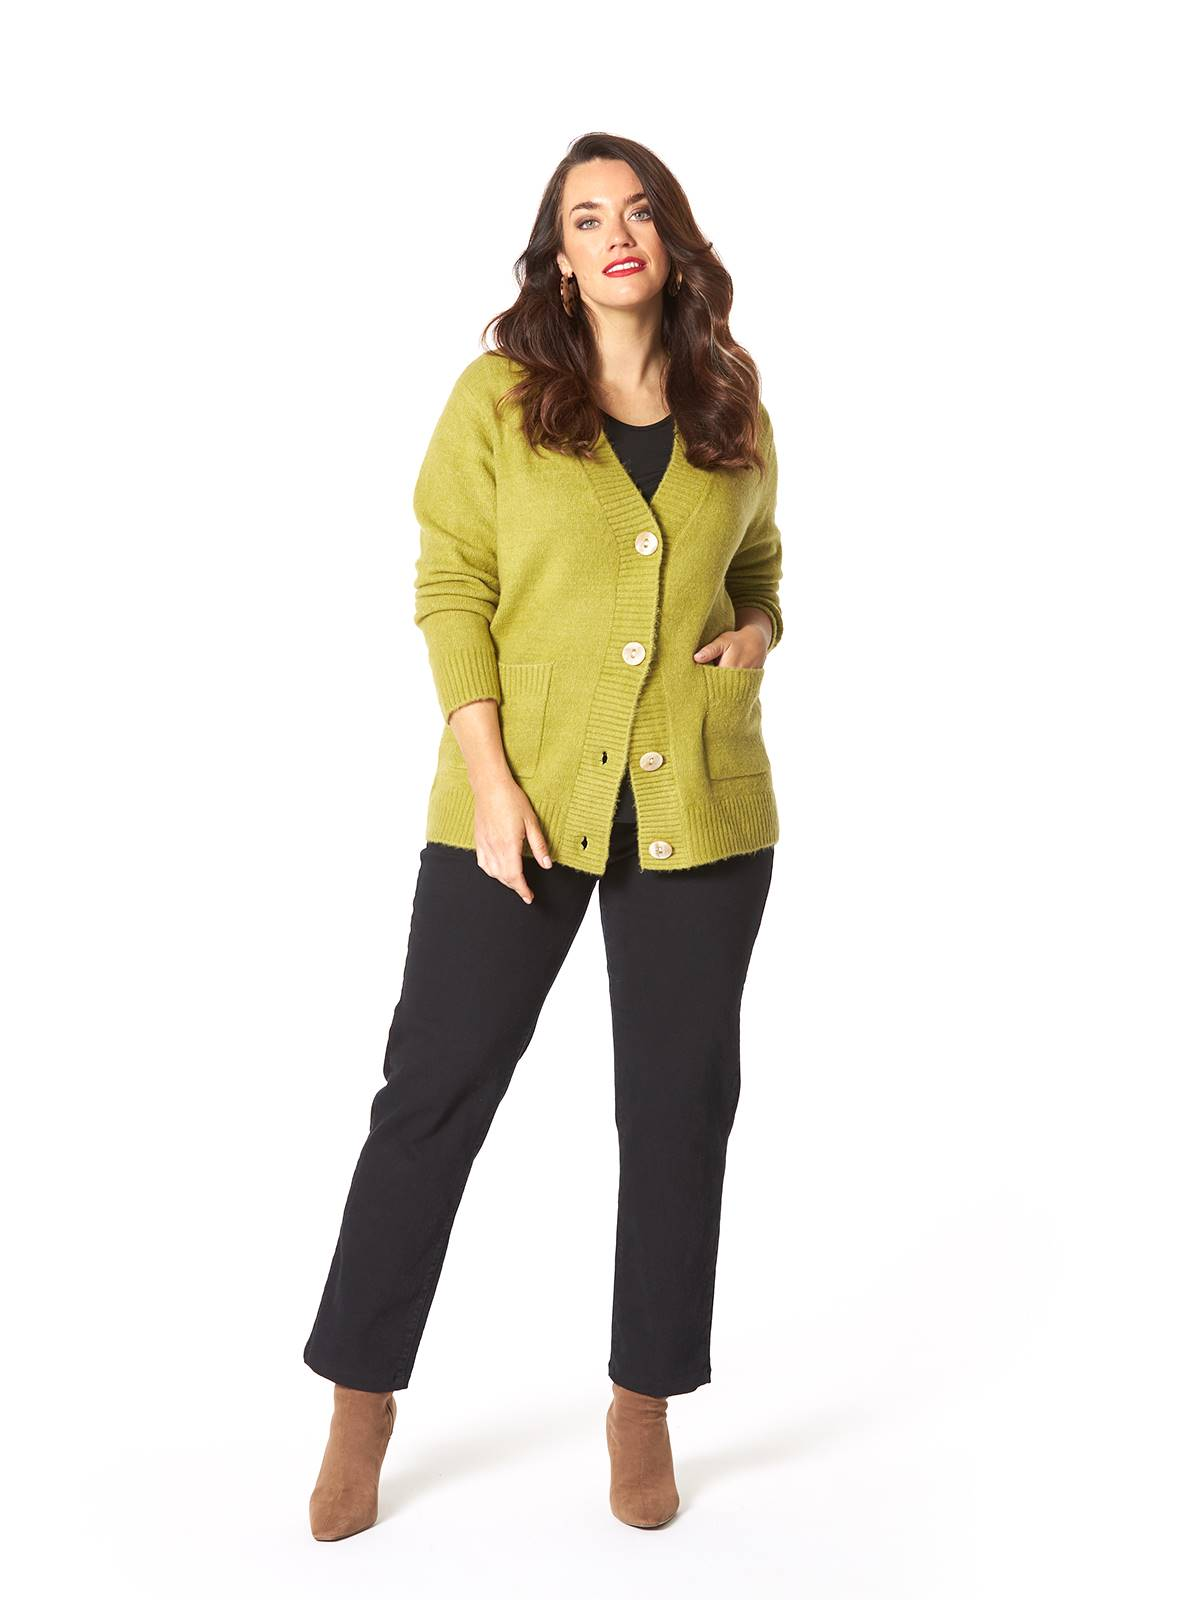 fashion for larger women